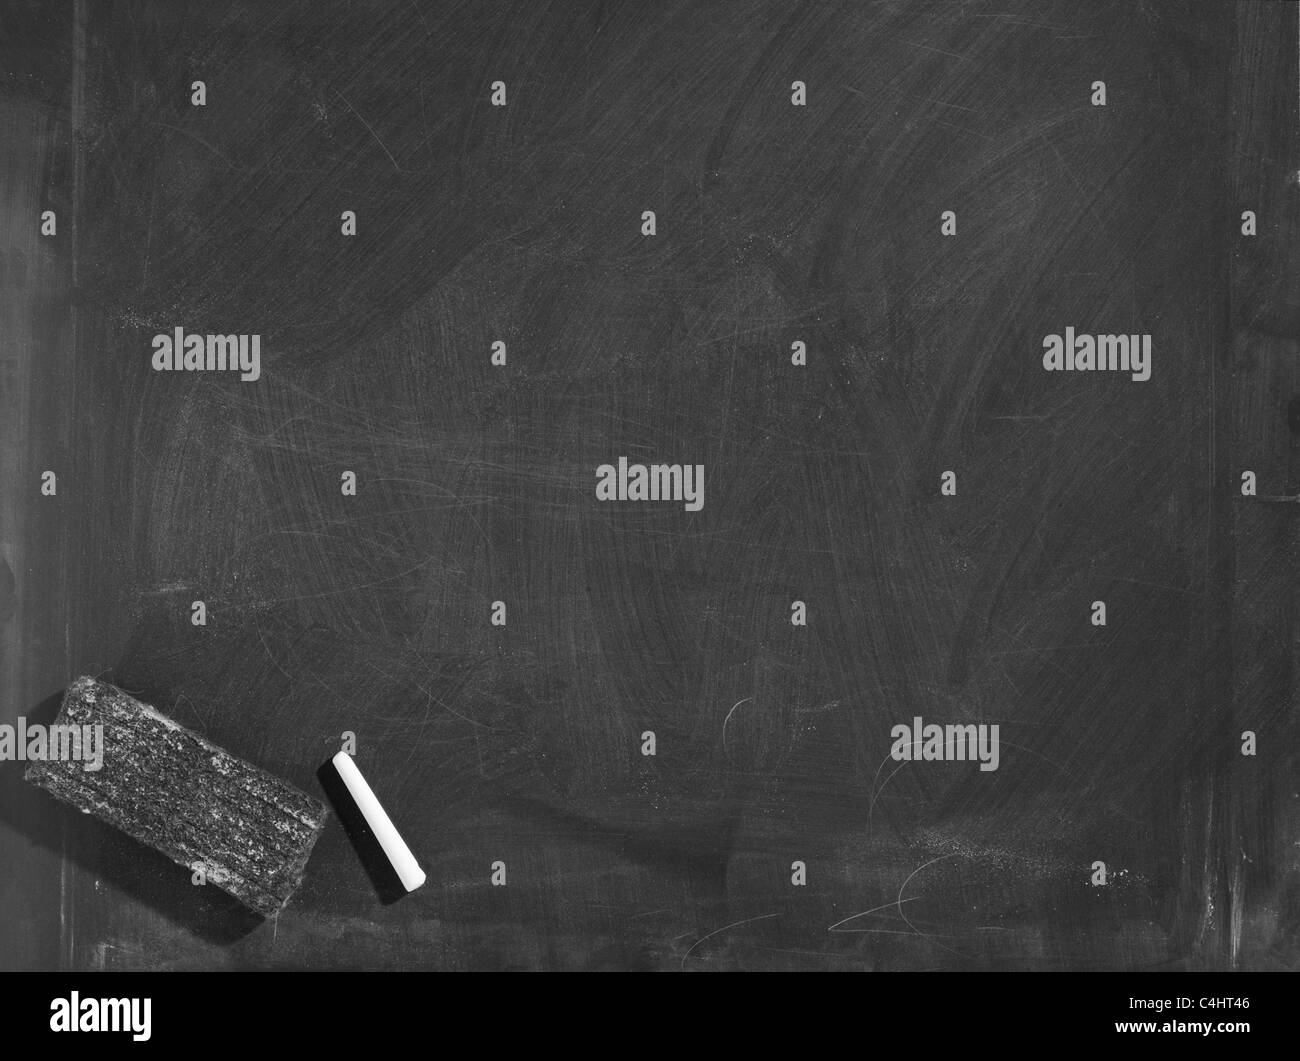 Blackboard with chalk and eraser - Stock Image